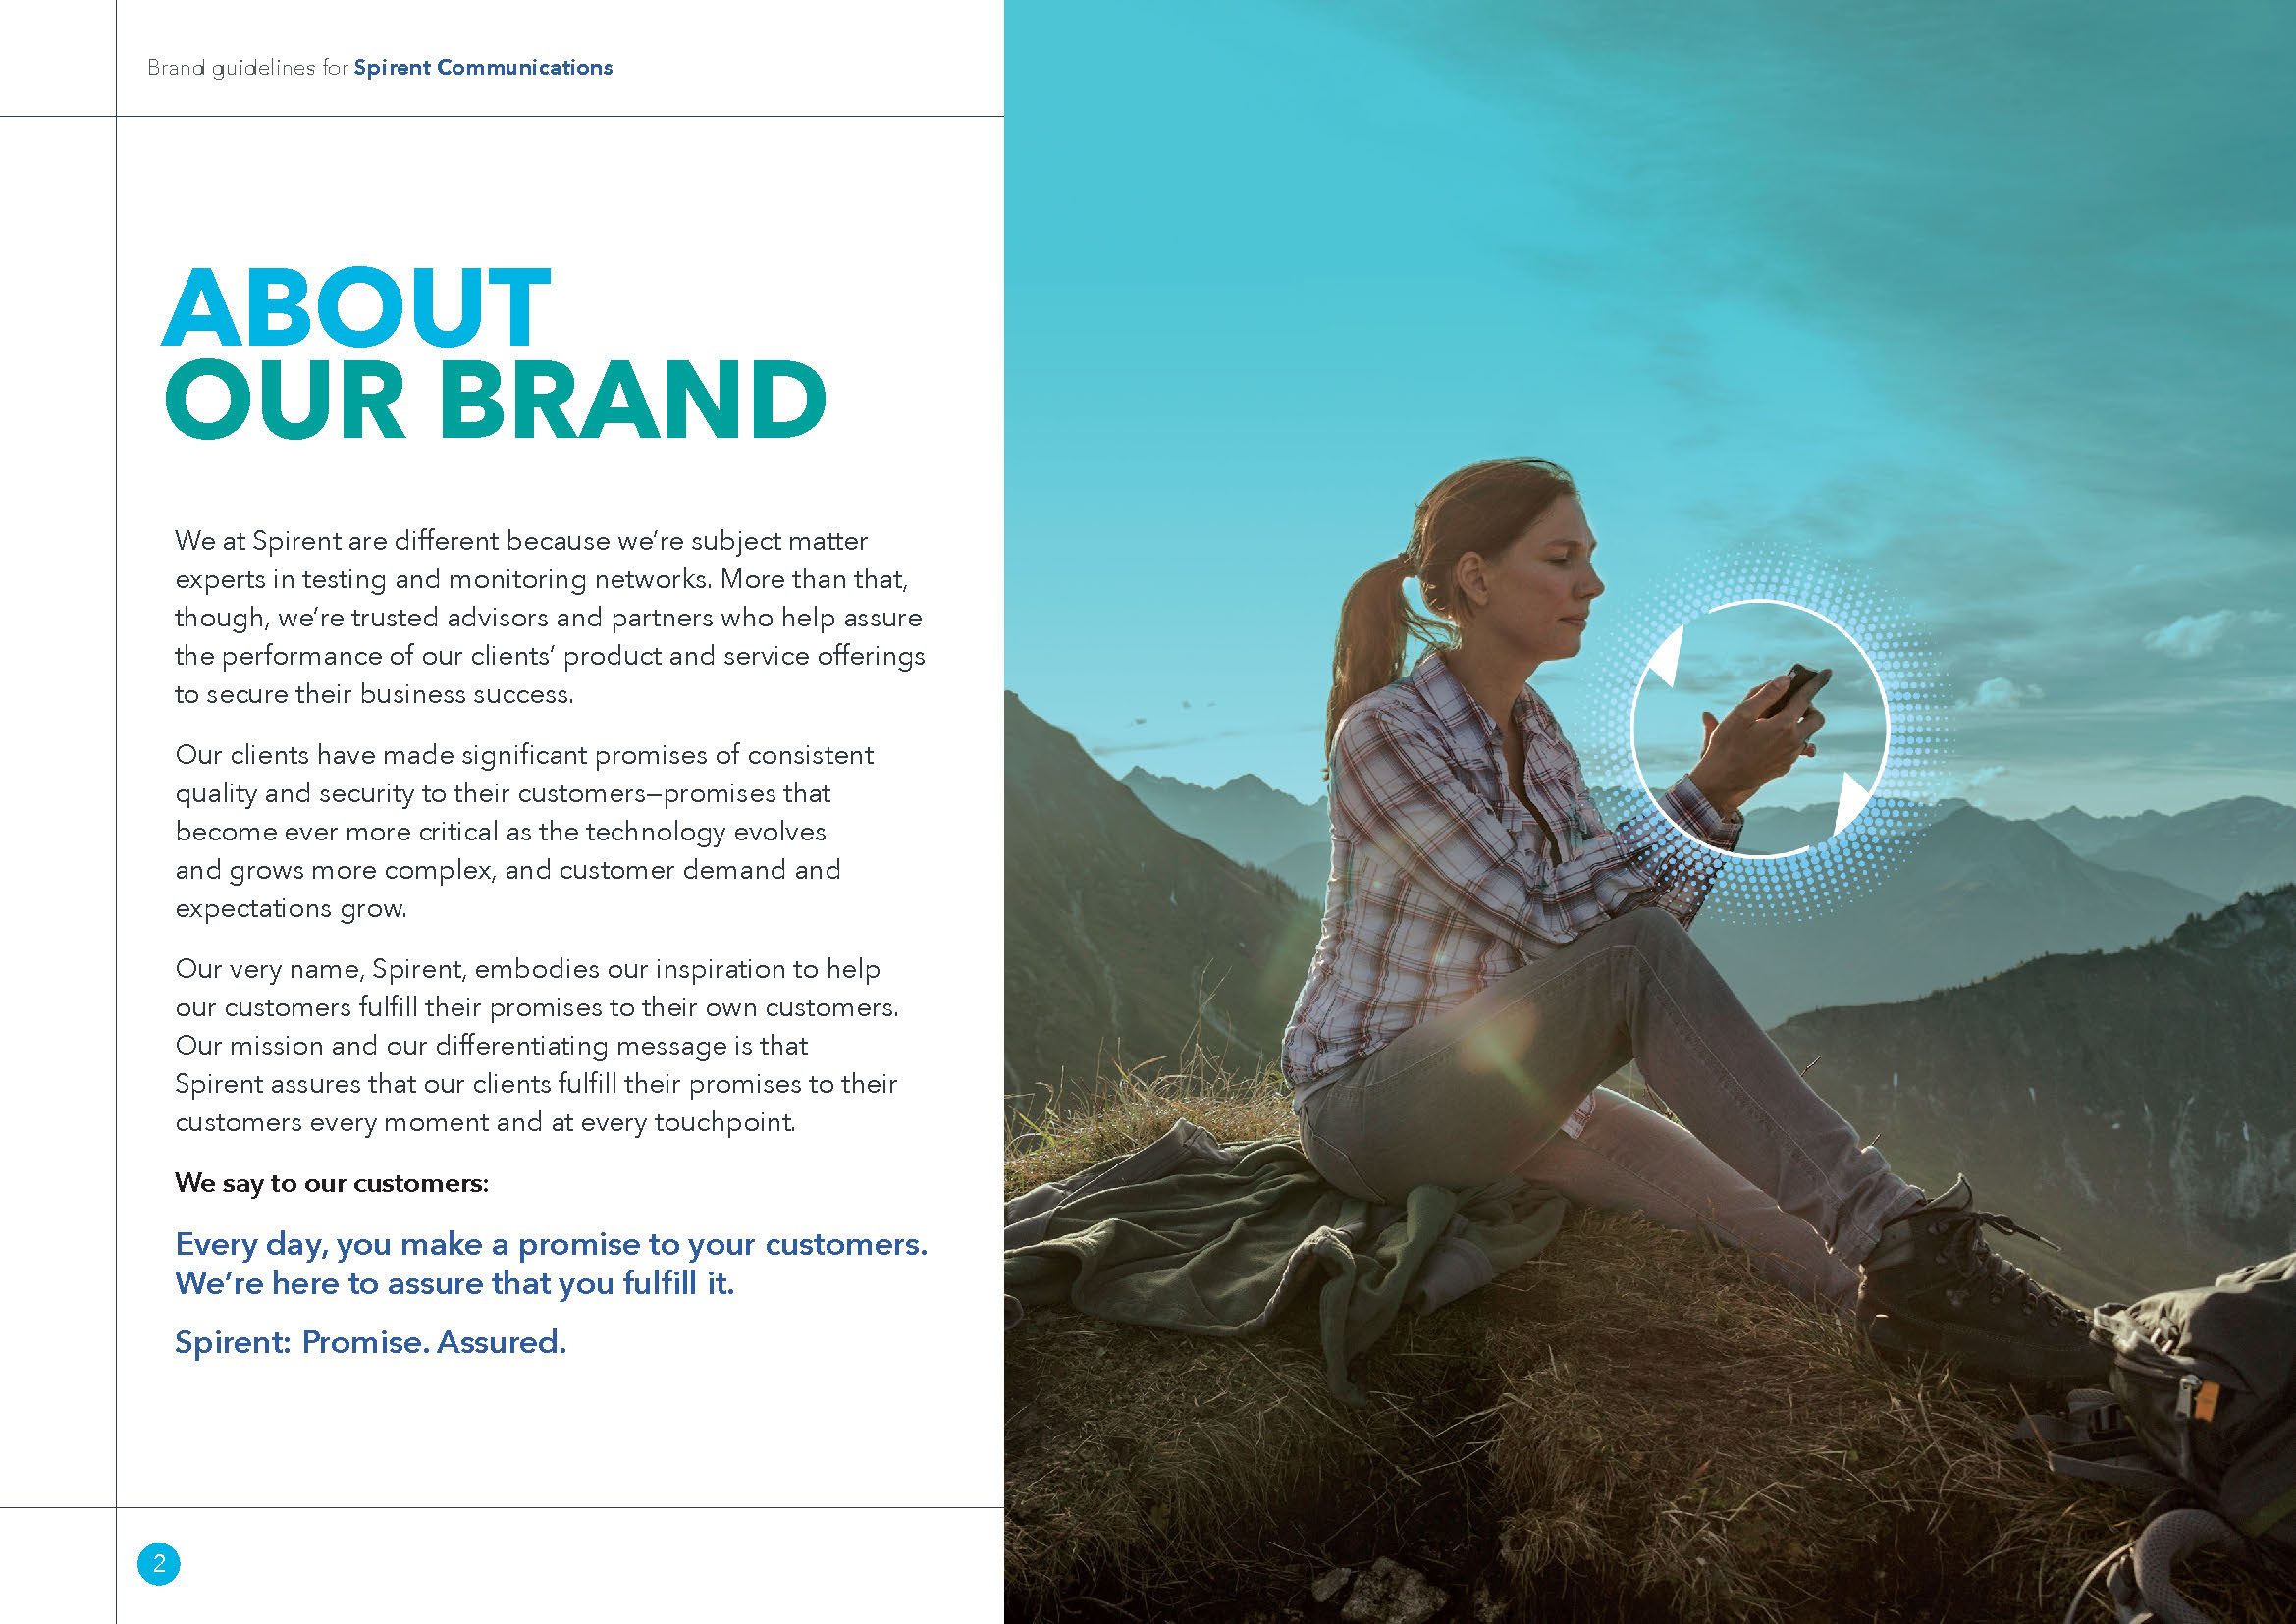 Spirent-Brand-Guidelines-7-18-18_Page_02.jpg